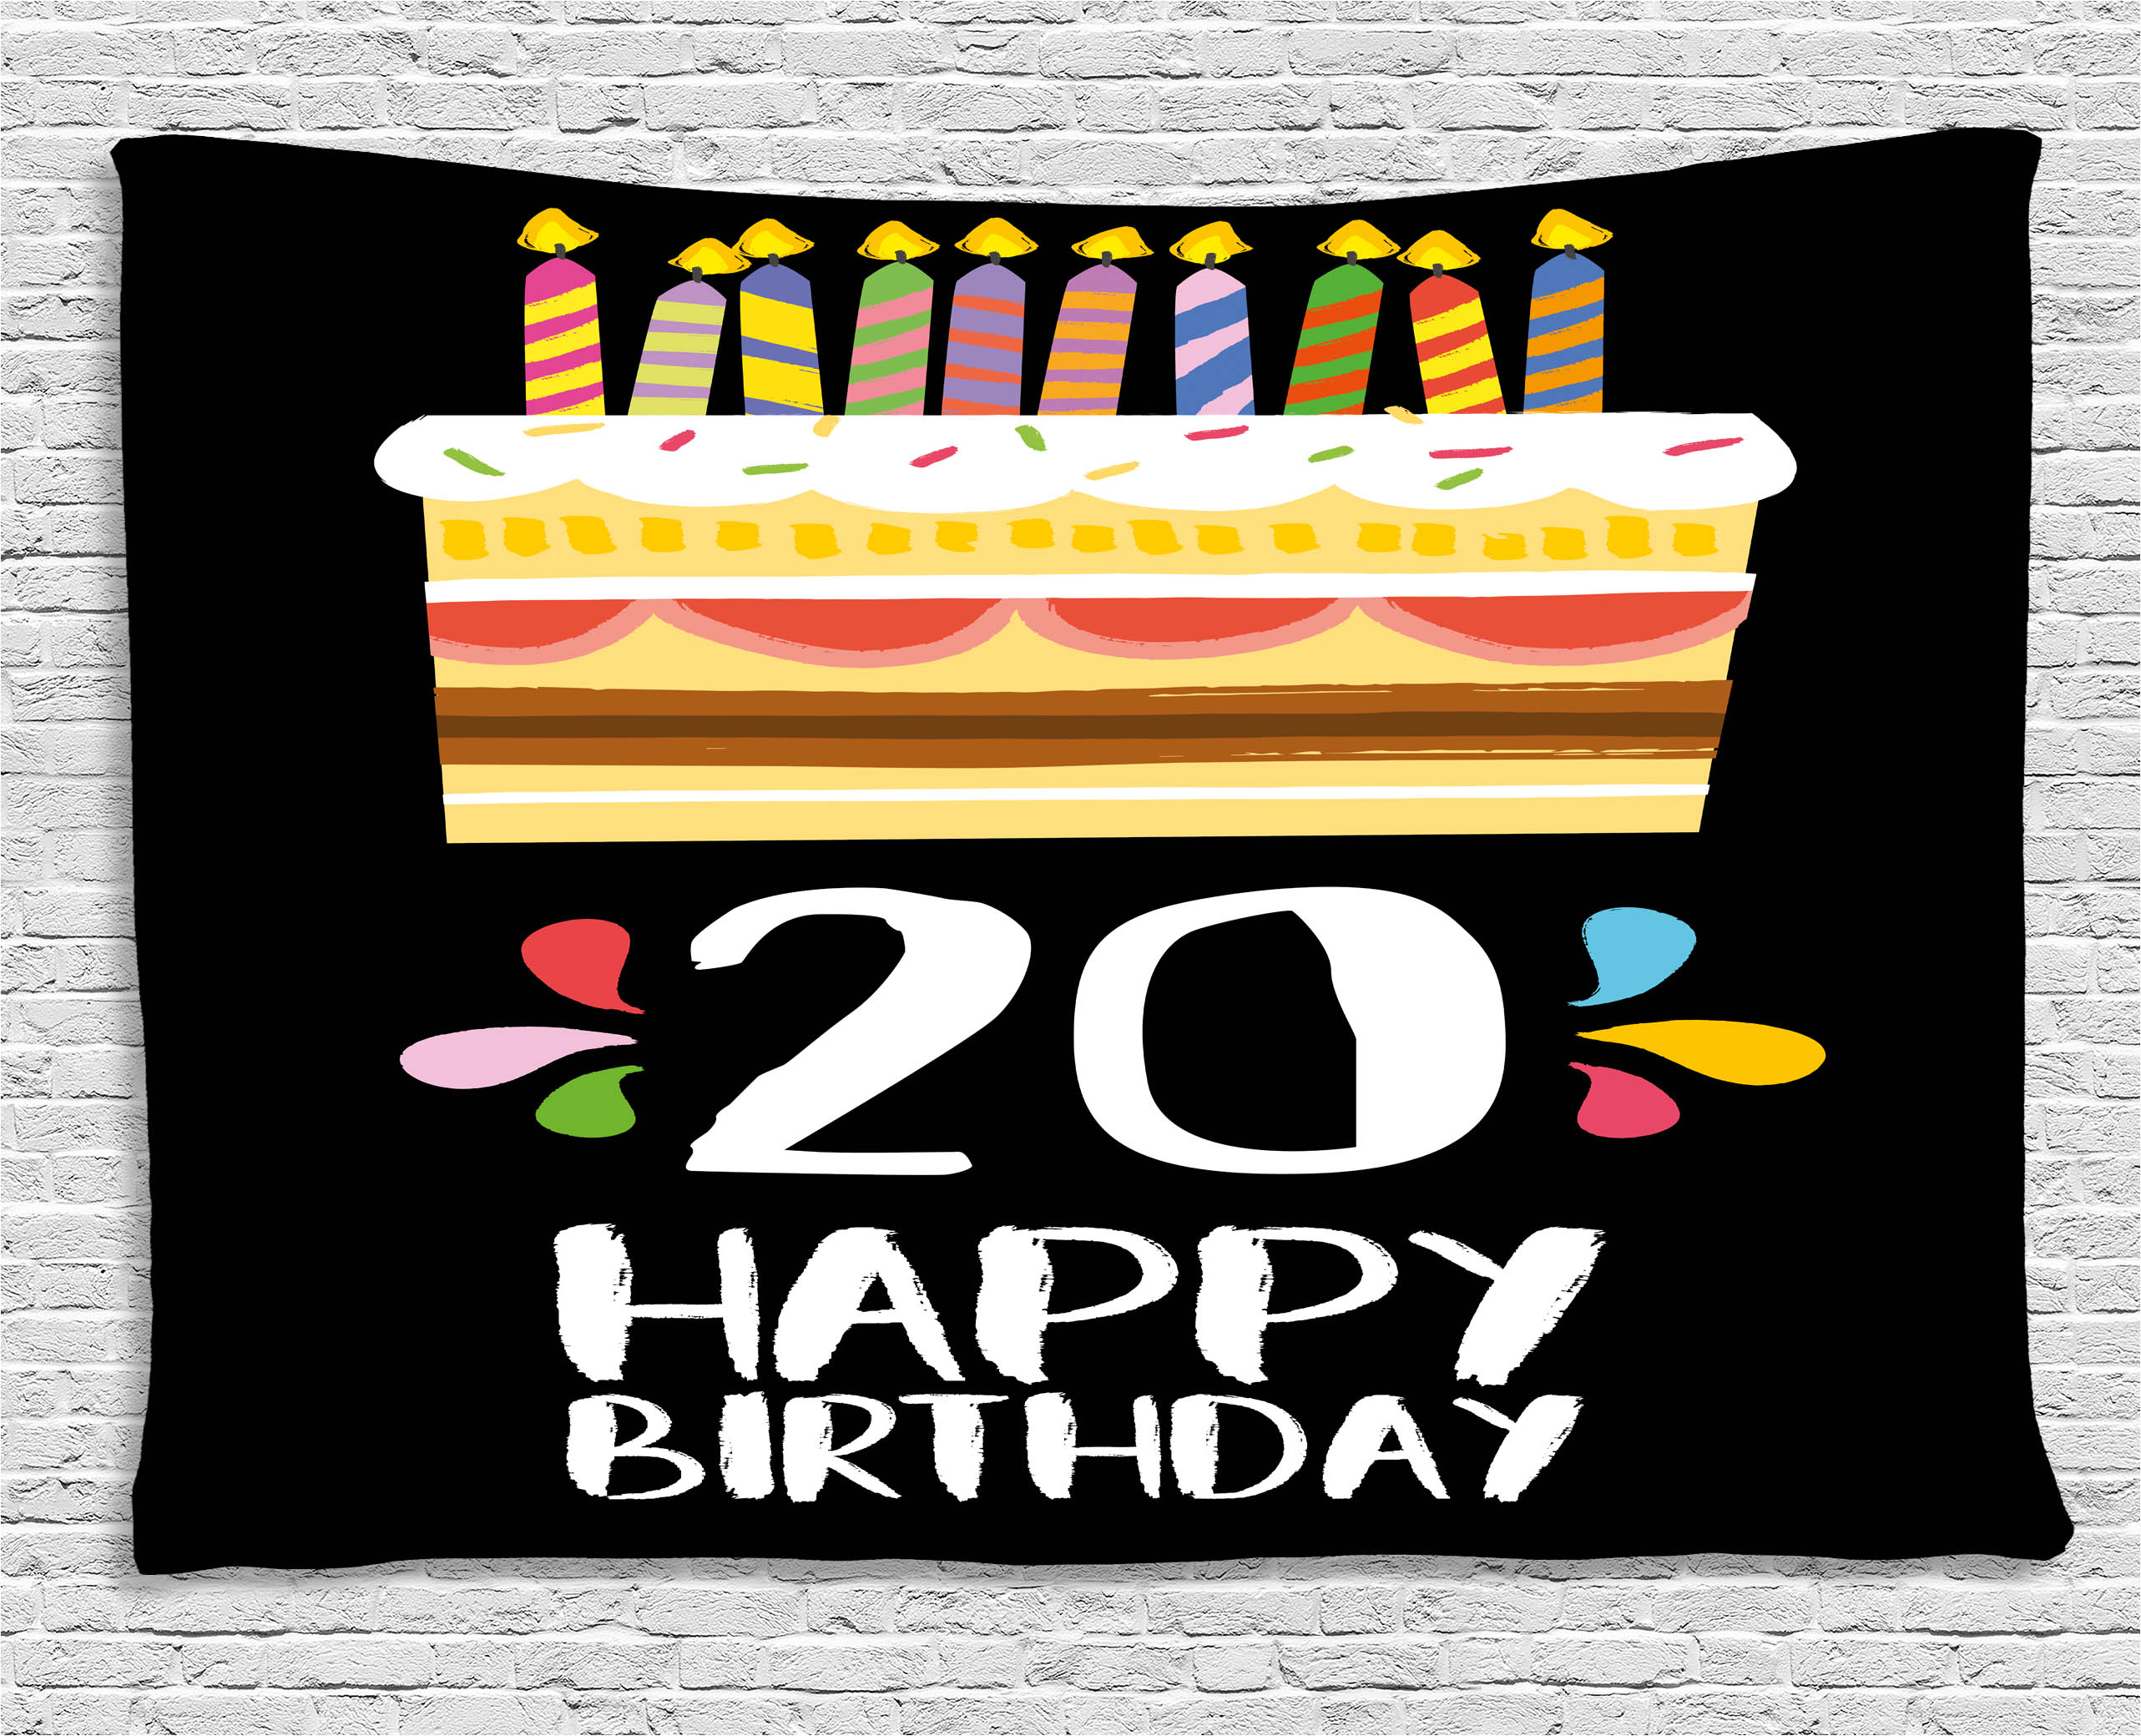 20th Birthday Decorations Tapestry Vintage Cartoon Style Party Cake With Candles On Black Backdrop Wall Hanging For Bedroom Living Room Dorm Decor